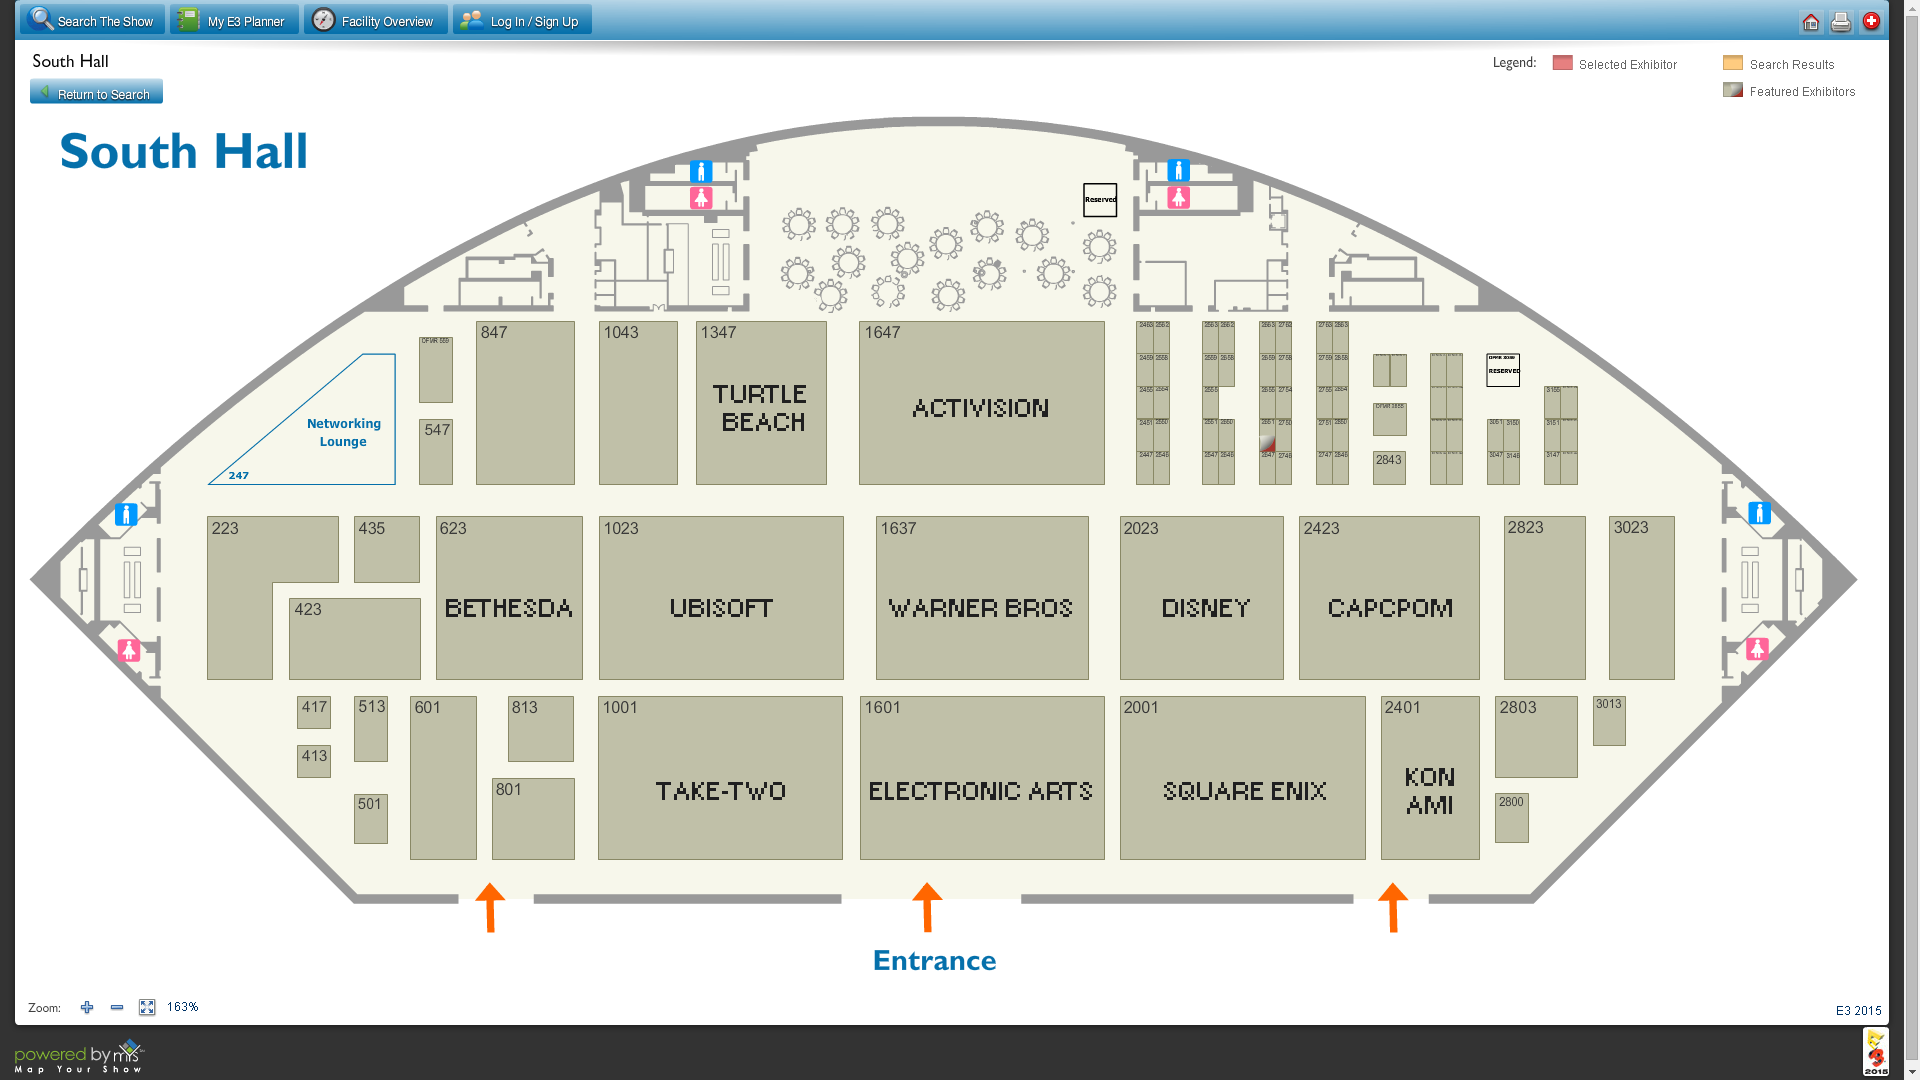 E3 2015 Floor Plan Released Square Enix And Disney Booths Can Be Found Next To Each Other Kingdom Hearts News Kh13 For Kingdom Hearts